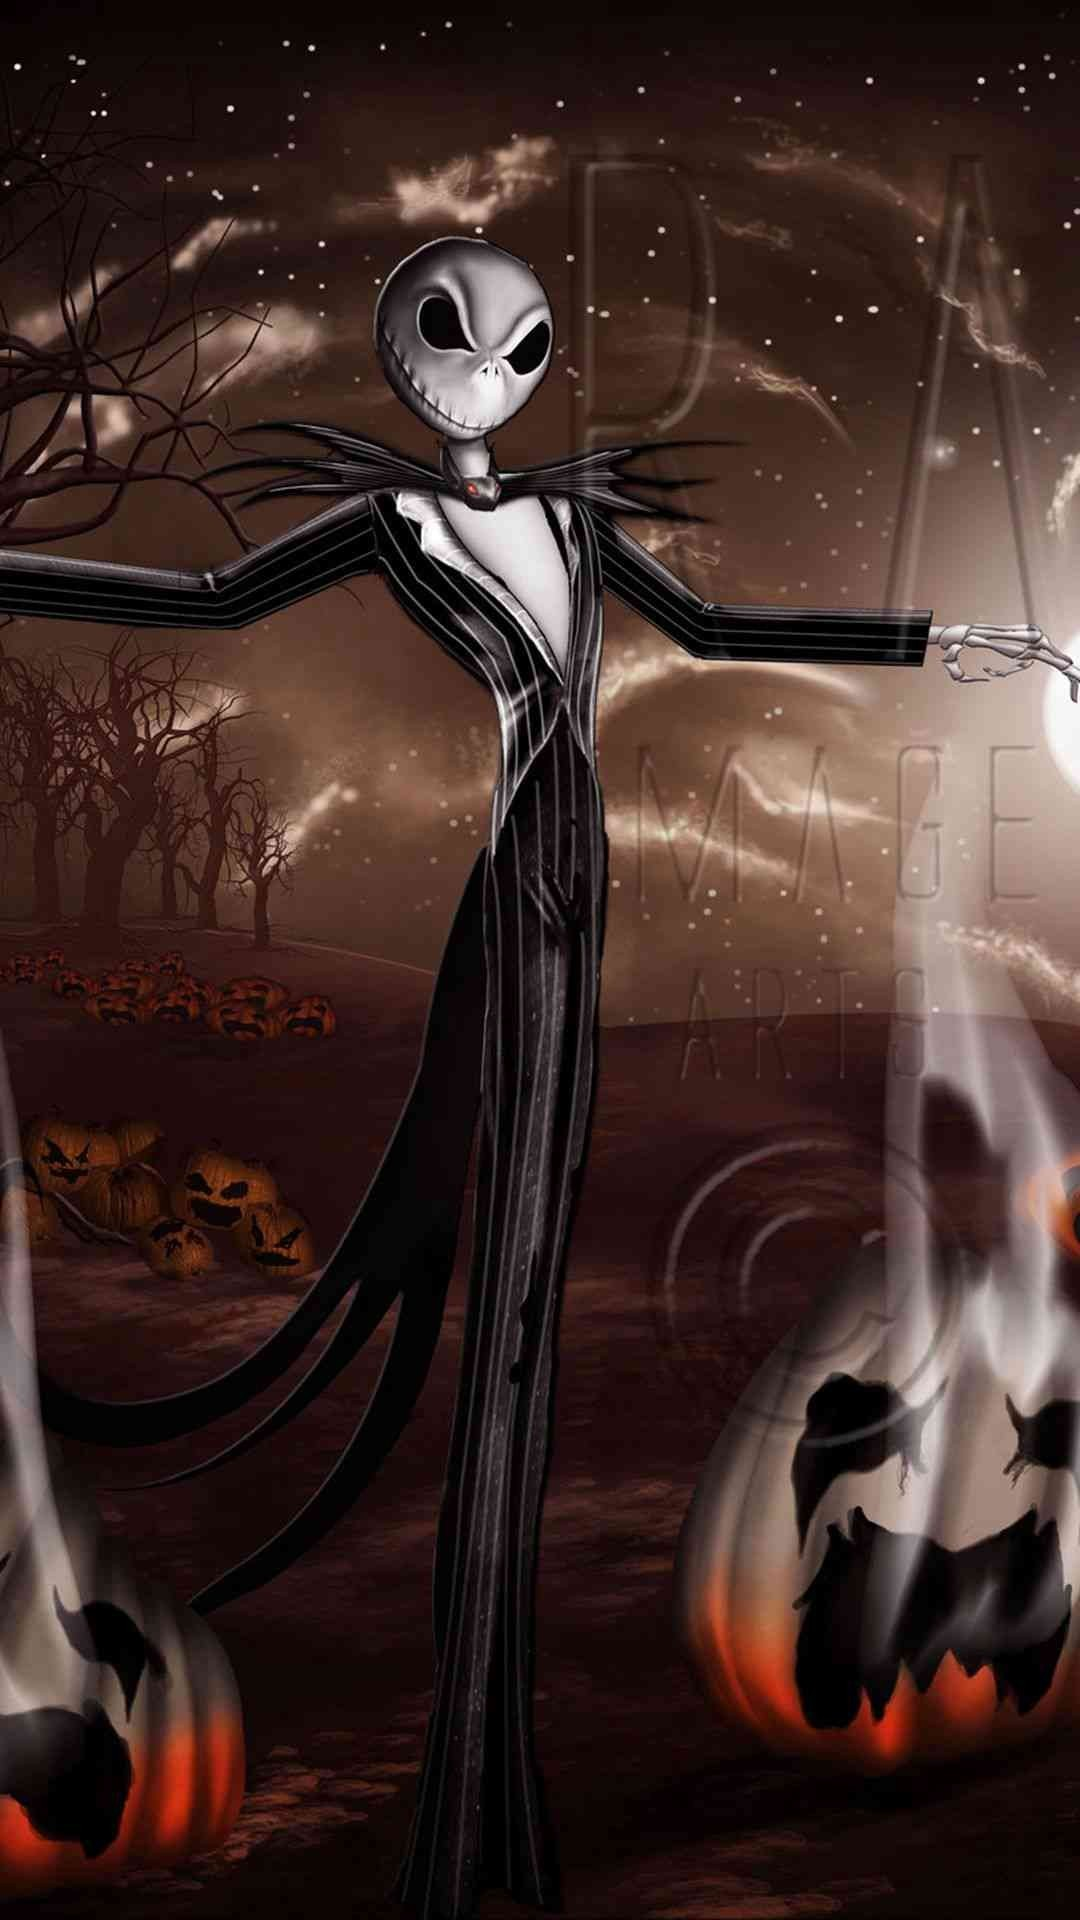 3d Wallpaper Parallax Free Nightmare Before Christmas Iphone Wallpaper 66 Images